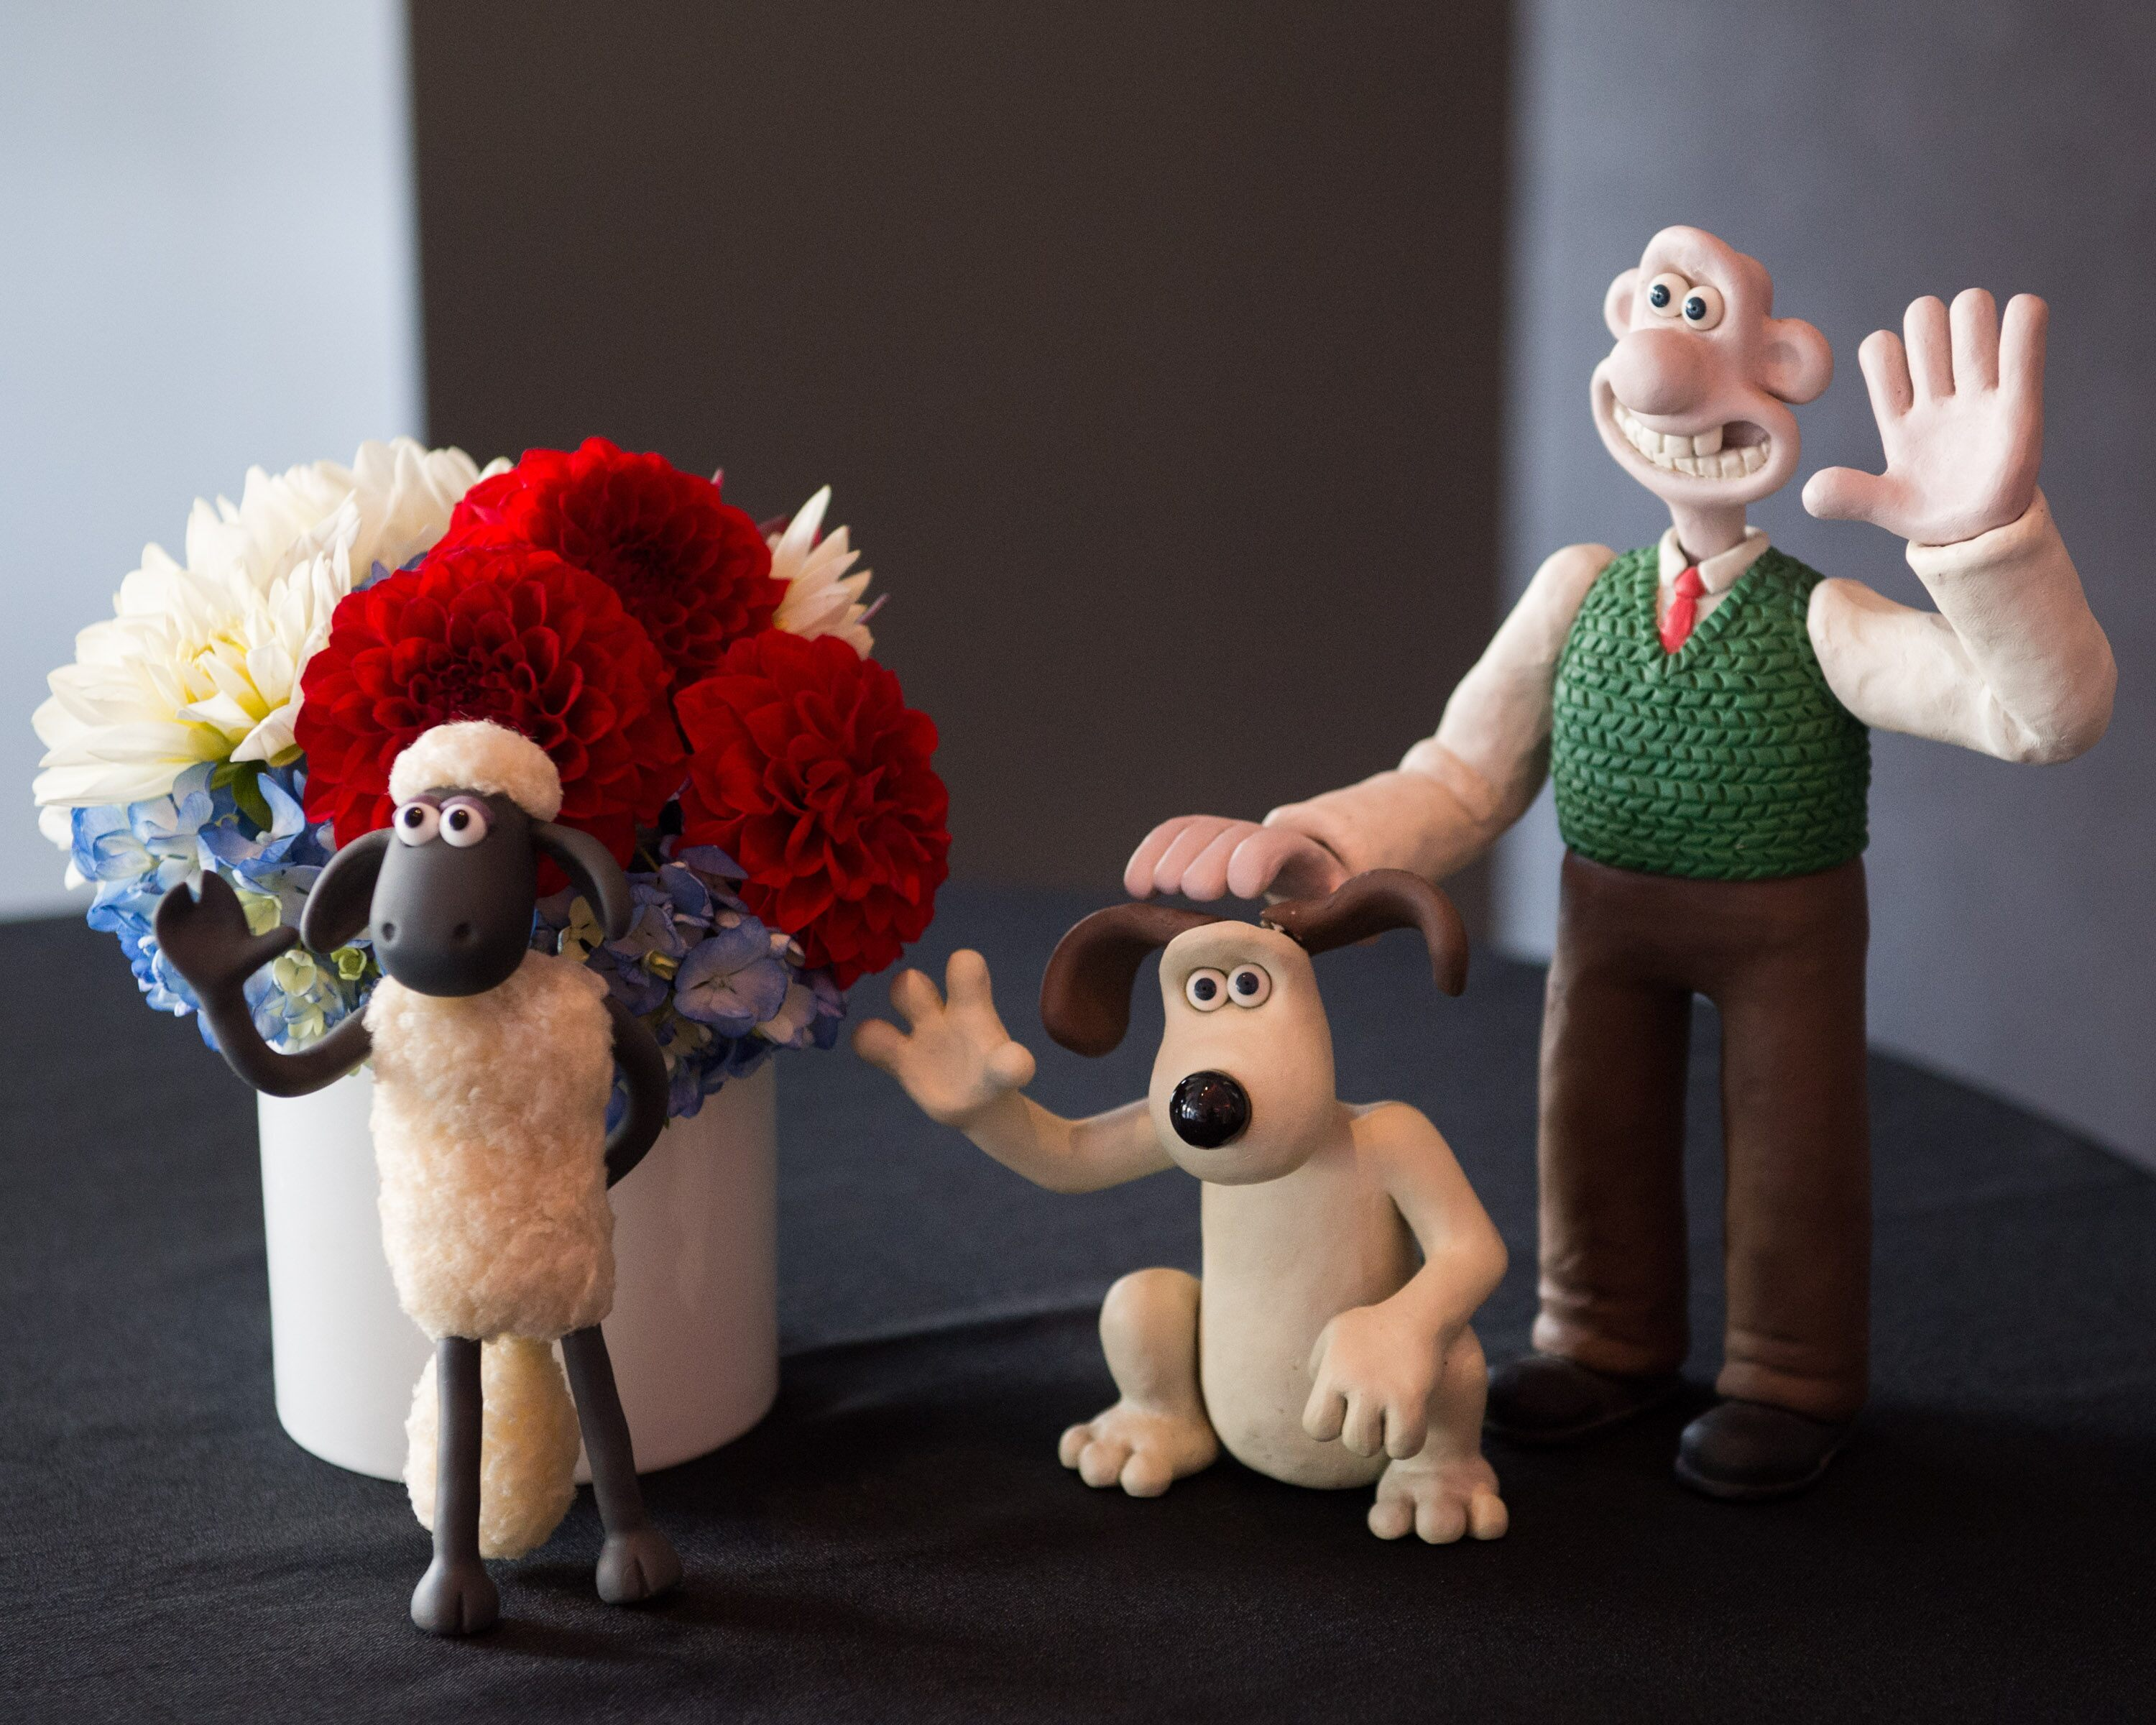 Aardman Animation brought some of their beloved characters to the event